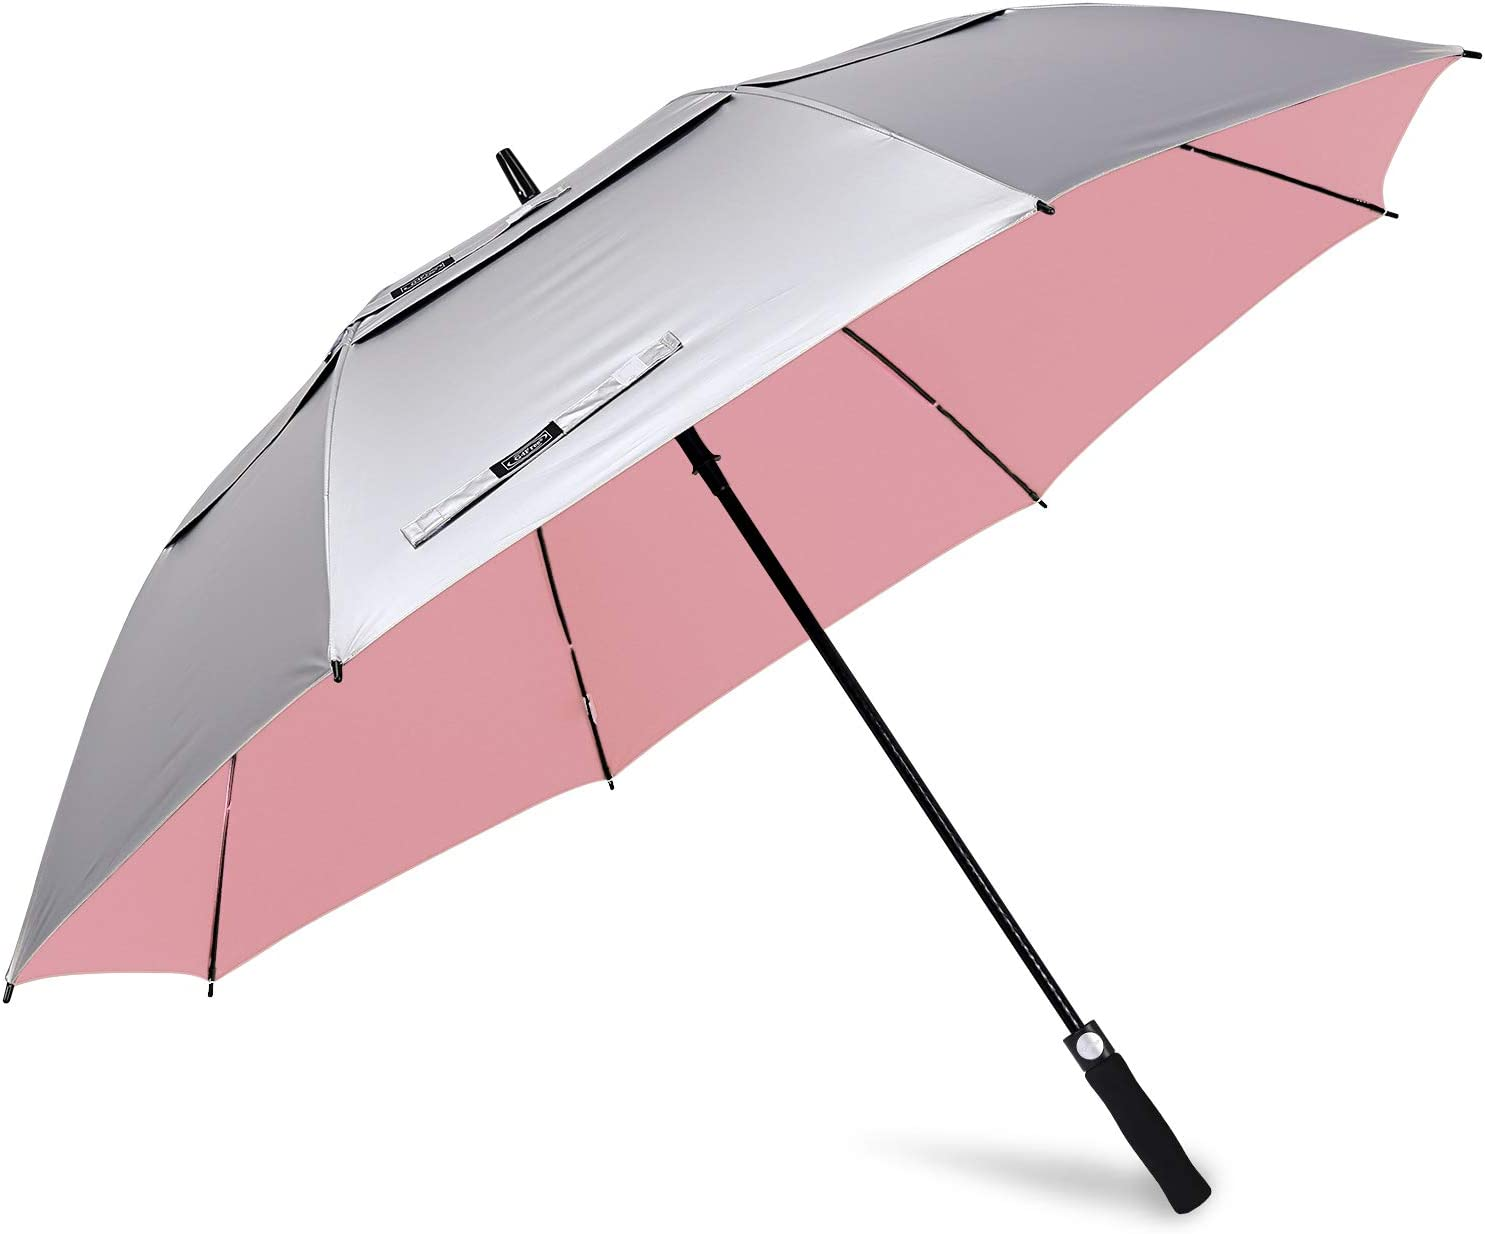 G4Free 62 68 Inch UV Protection Open Umbrella Charlotte Mall D Mail order cheap Auto Vented Golf